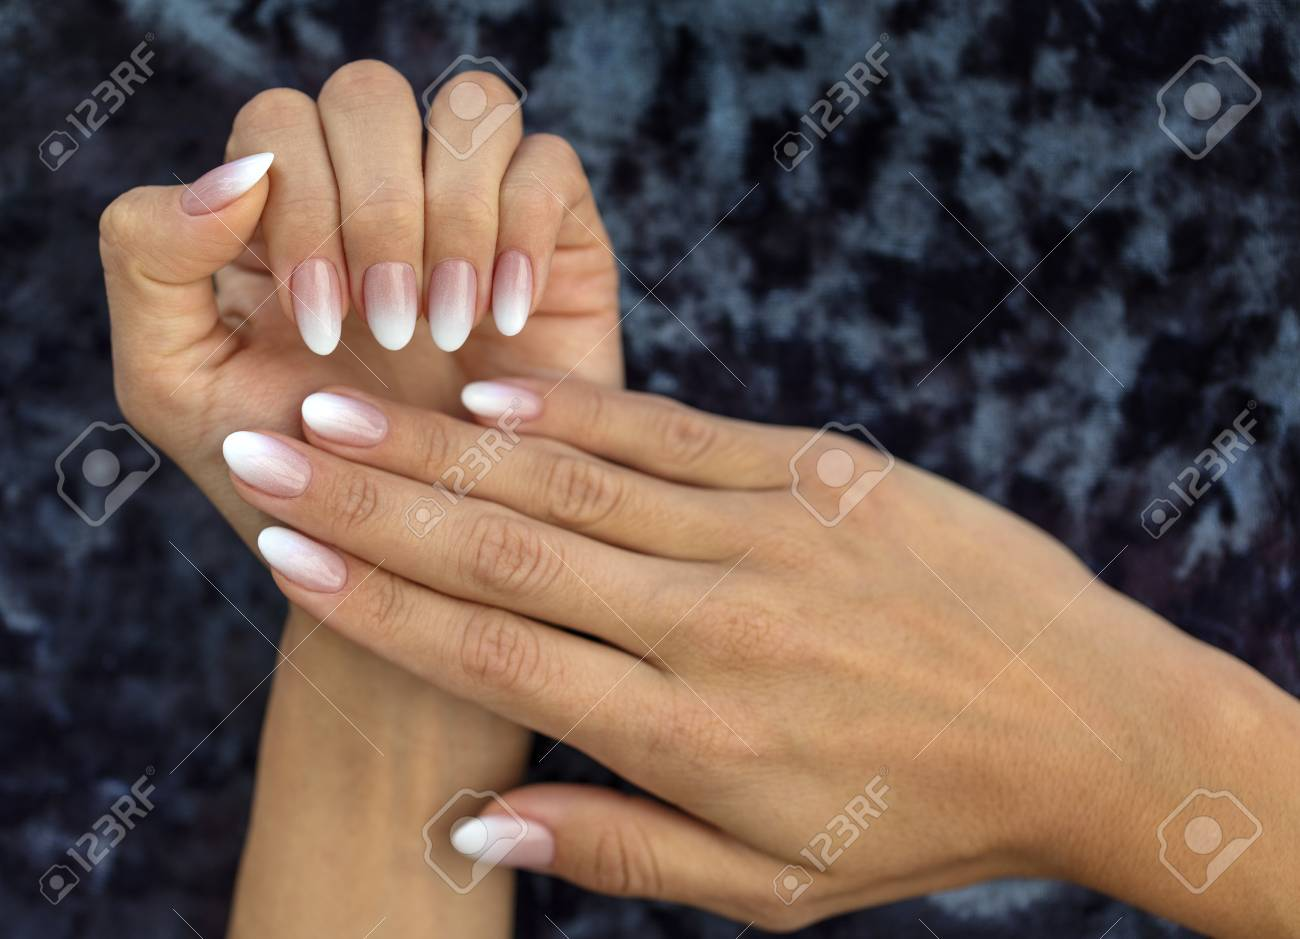 Beautiful woman's nails with beautiful french manicure ombre